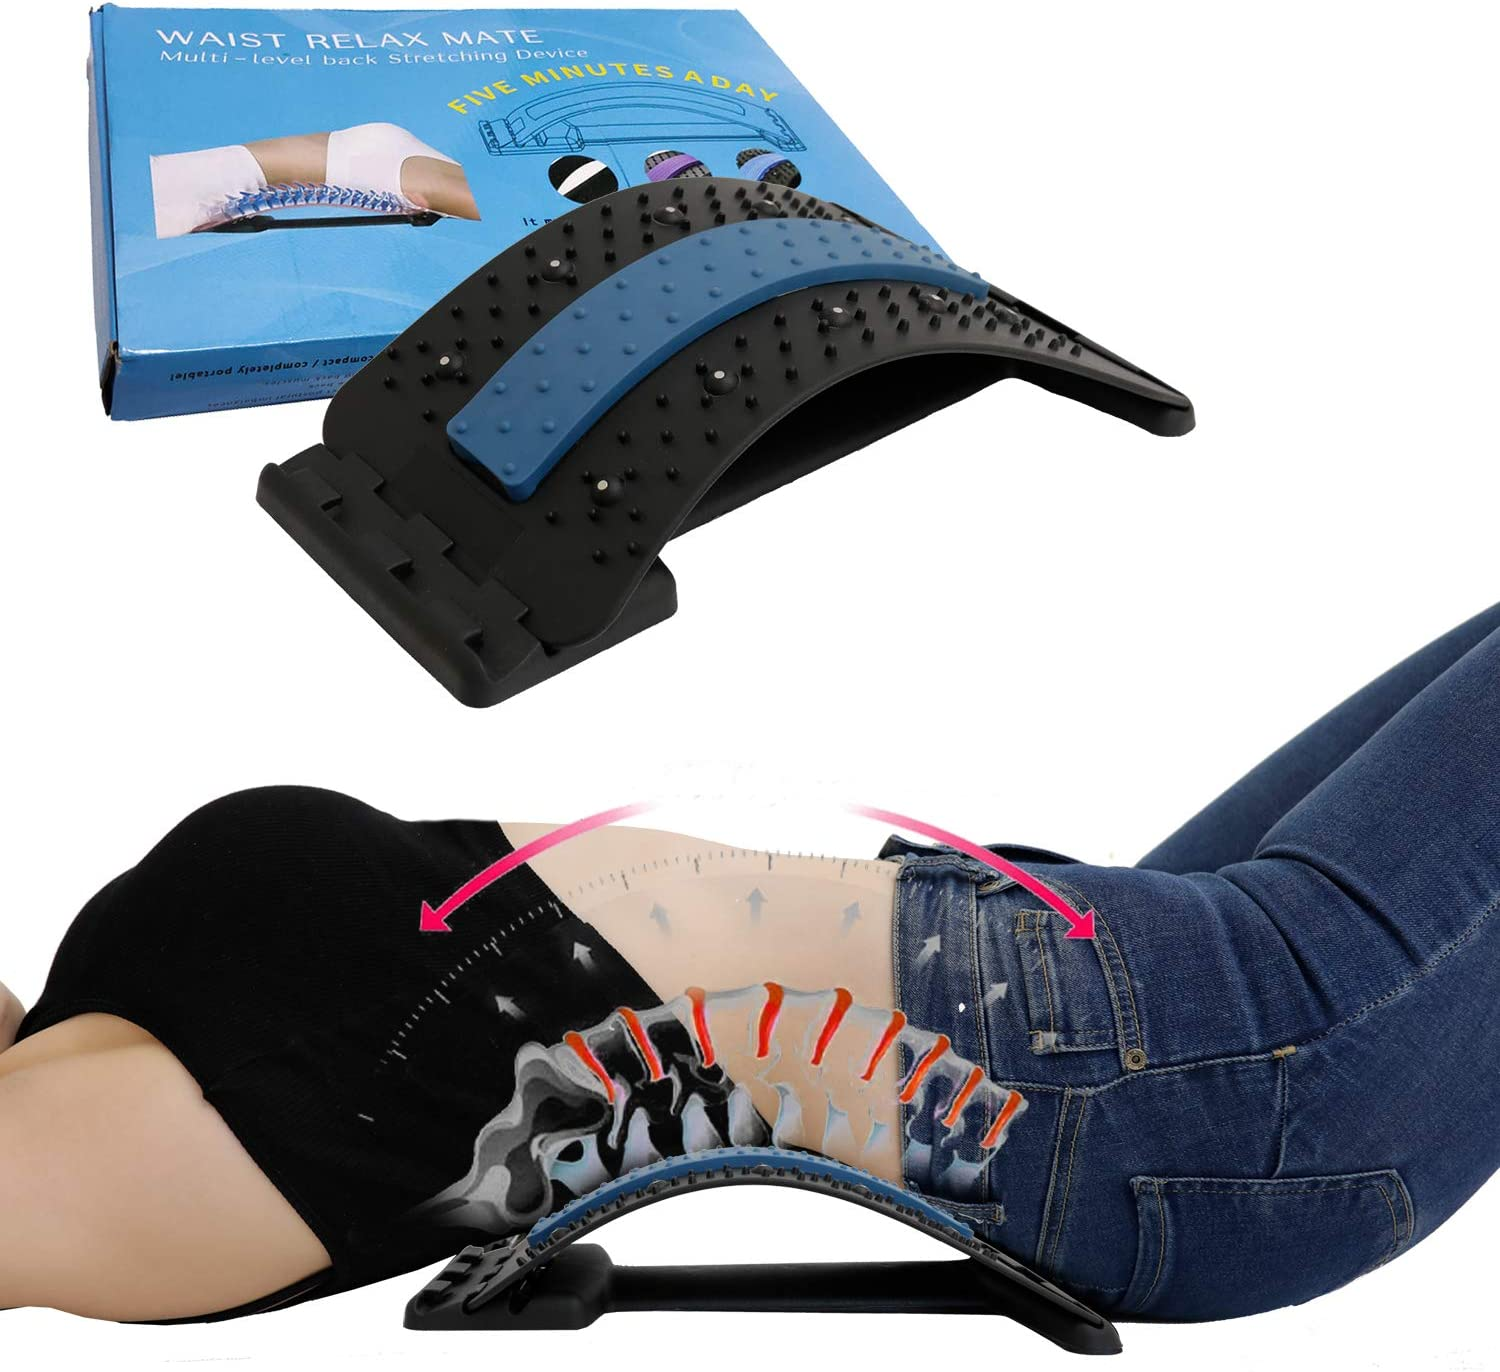 Spine Deck Max 55% OFF Back - Now free shipping Stretcher Reviews